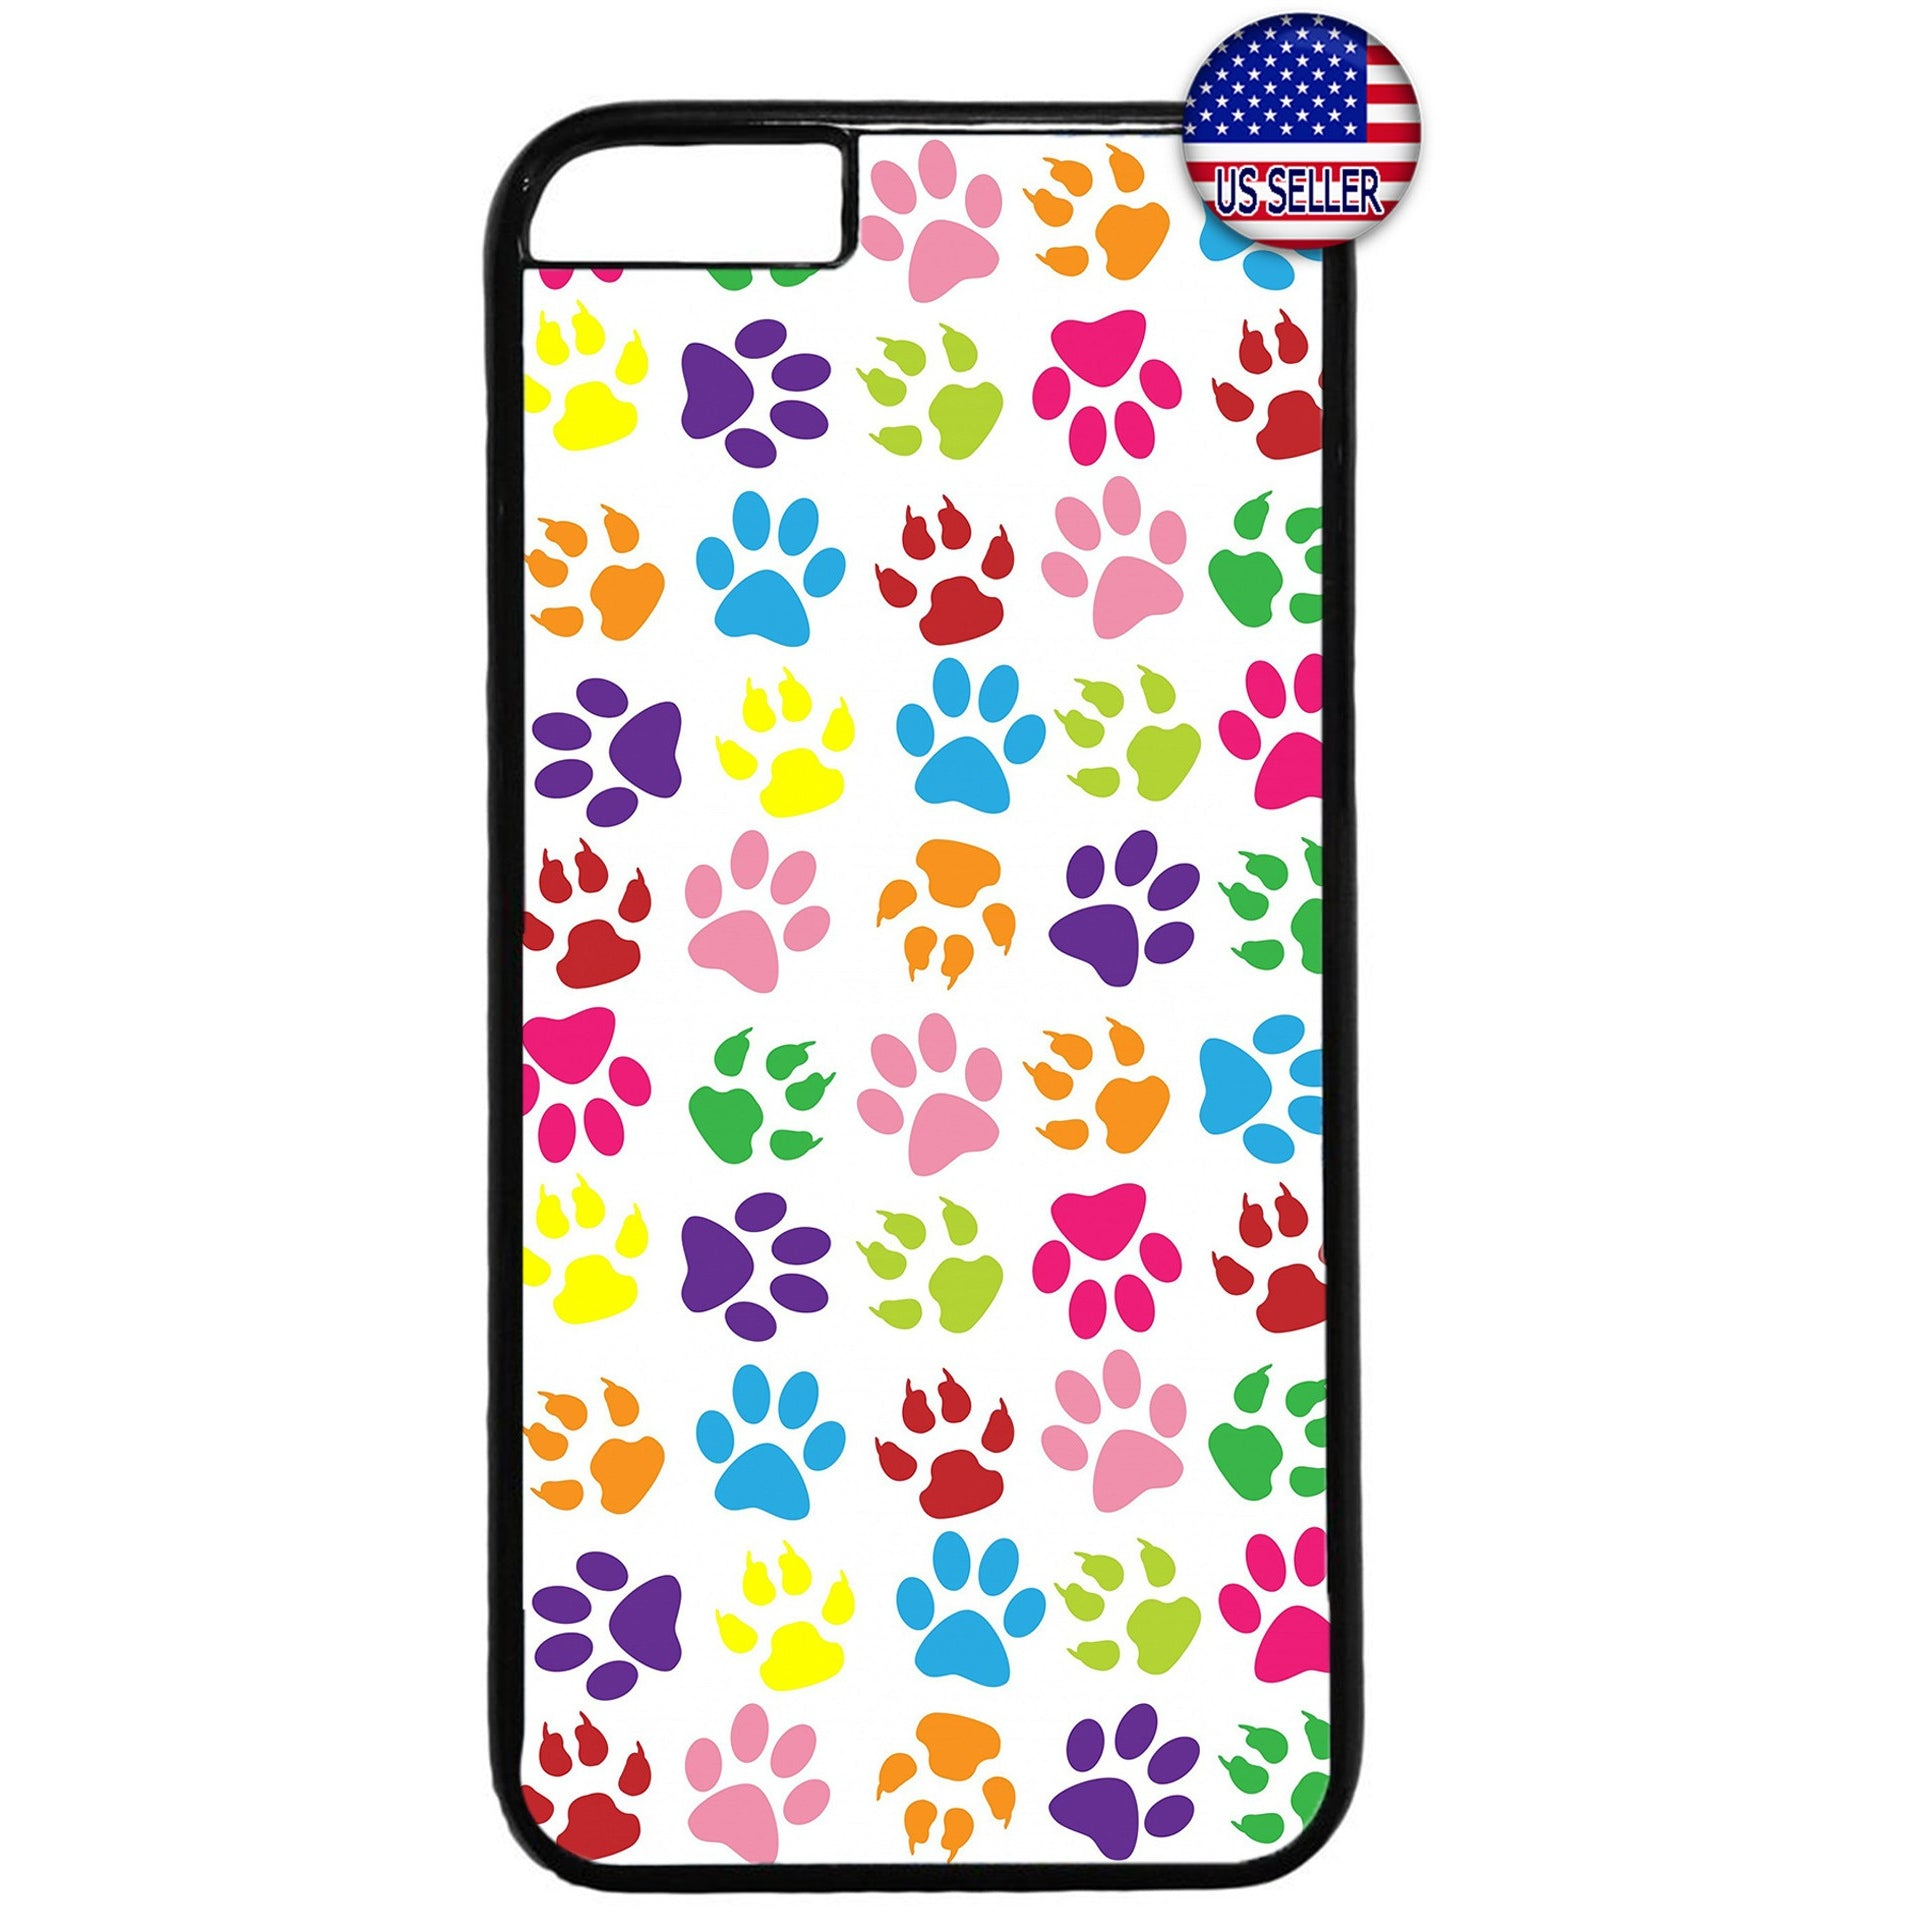 Paws Cats Dogs Colorful Rubber Case Cover For Iphone